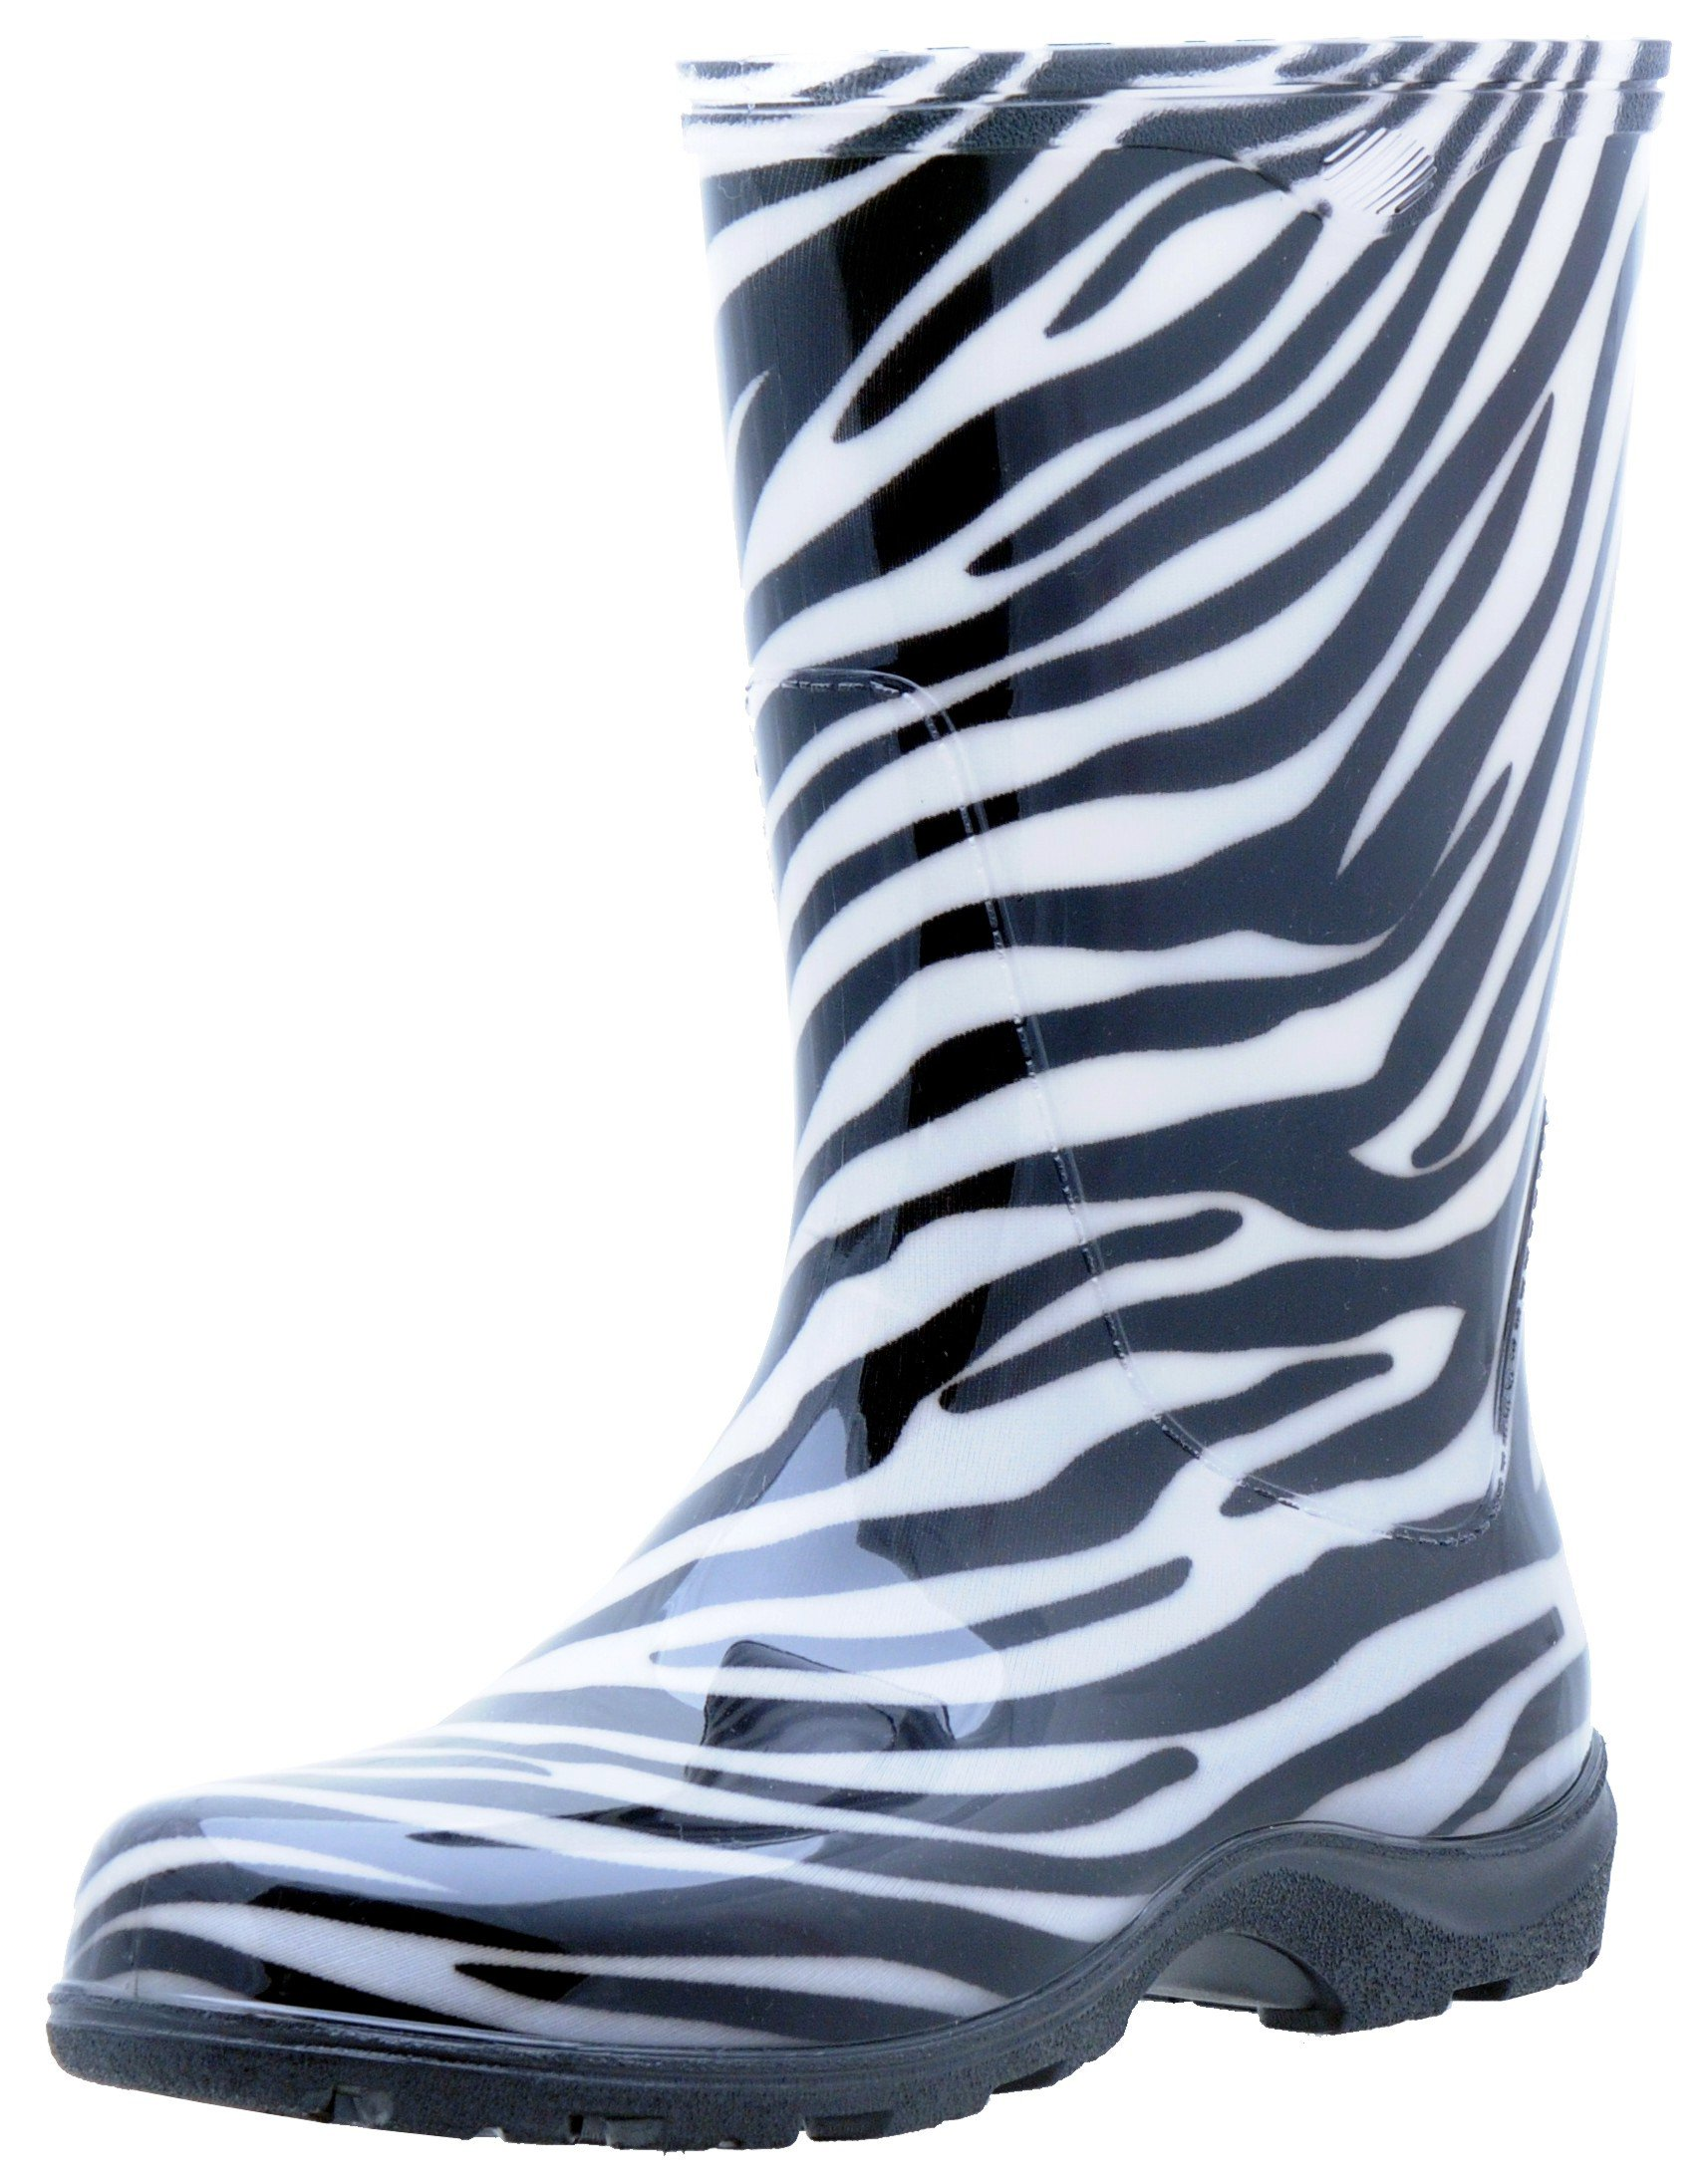 Sloggers Women's Rain and Garden Boot with All-Day-Comfort Insole, Zebra Print - Wo's size 9 - Style 5006ZE09